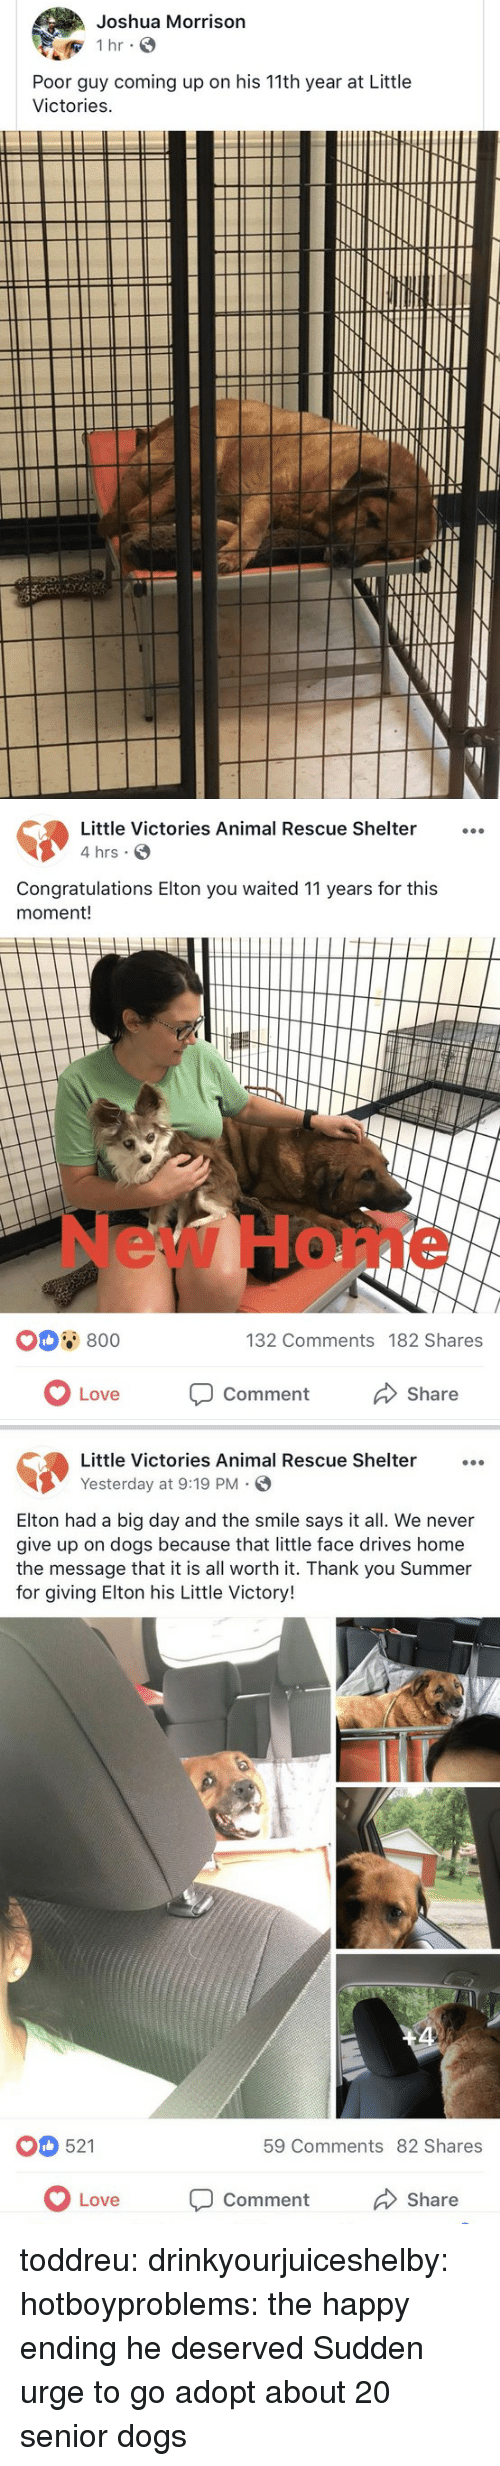 Dogs, Gif, and Love: Joshua Morrison  Poor guy coming up on his 11th year at Little  Victories   Little Victories Animal Rescue Shelter...  4 hrs  Congratulations Elton you waited 11 years for this  moment!  New Home  0 800  132 Comments 182 Shares  OLove  Comment  Share   Little Victories Animal Rescue Shelter  Yesterday at 9:19 PM.  Elton had a big day and the smile says it all. We never  give up on dogs because that little face drives home  the message that it is all worth it. Thank you Summer  for giving Elton his Little Victory!  521  59 Comments 82 Shares  Love Comment  Share toddreu:  drinkyourjuiceshelby:  hotboyproblems: the happy ending he deserved   Sudden urge to go adopt about 20 senior dogs